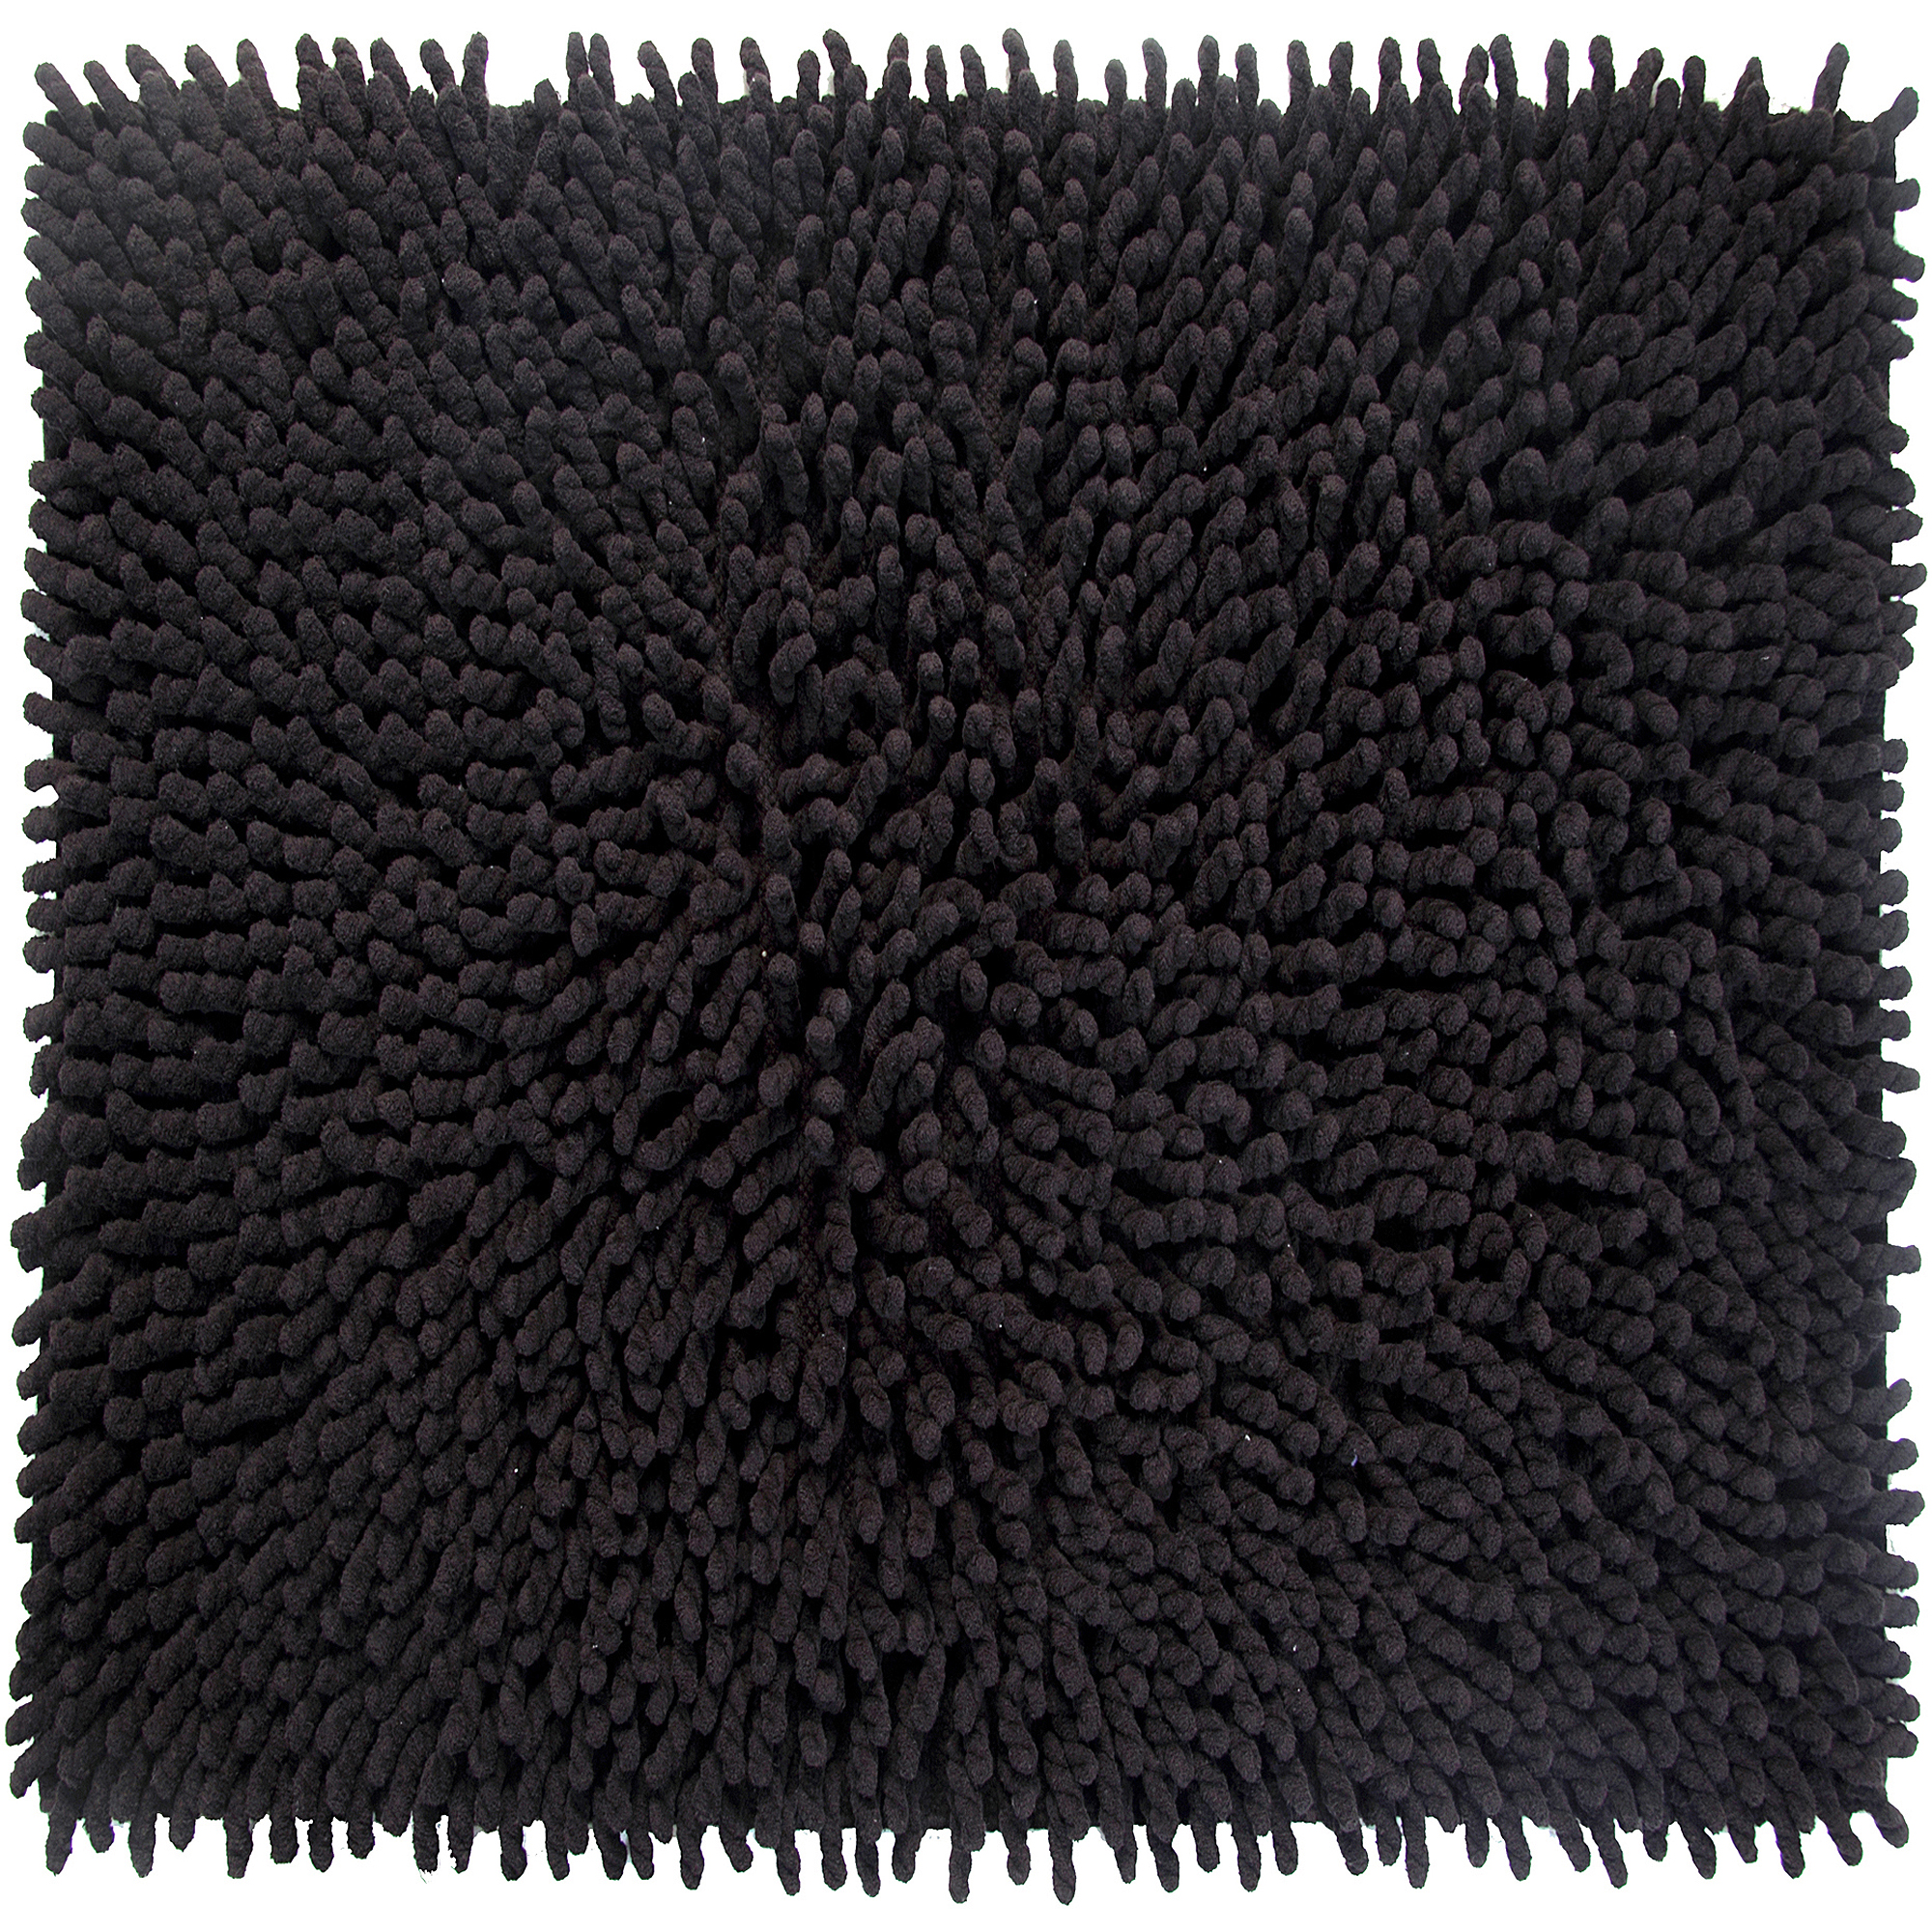 Loopy Chenille 100 Percent Cotton Bath Rug